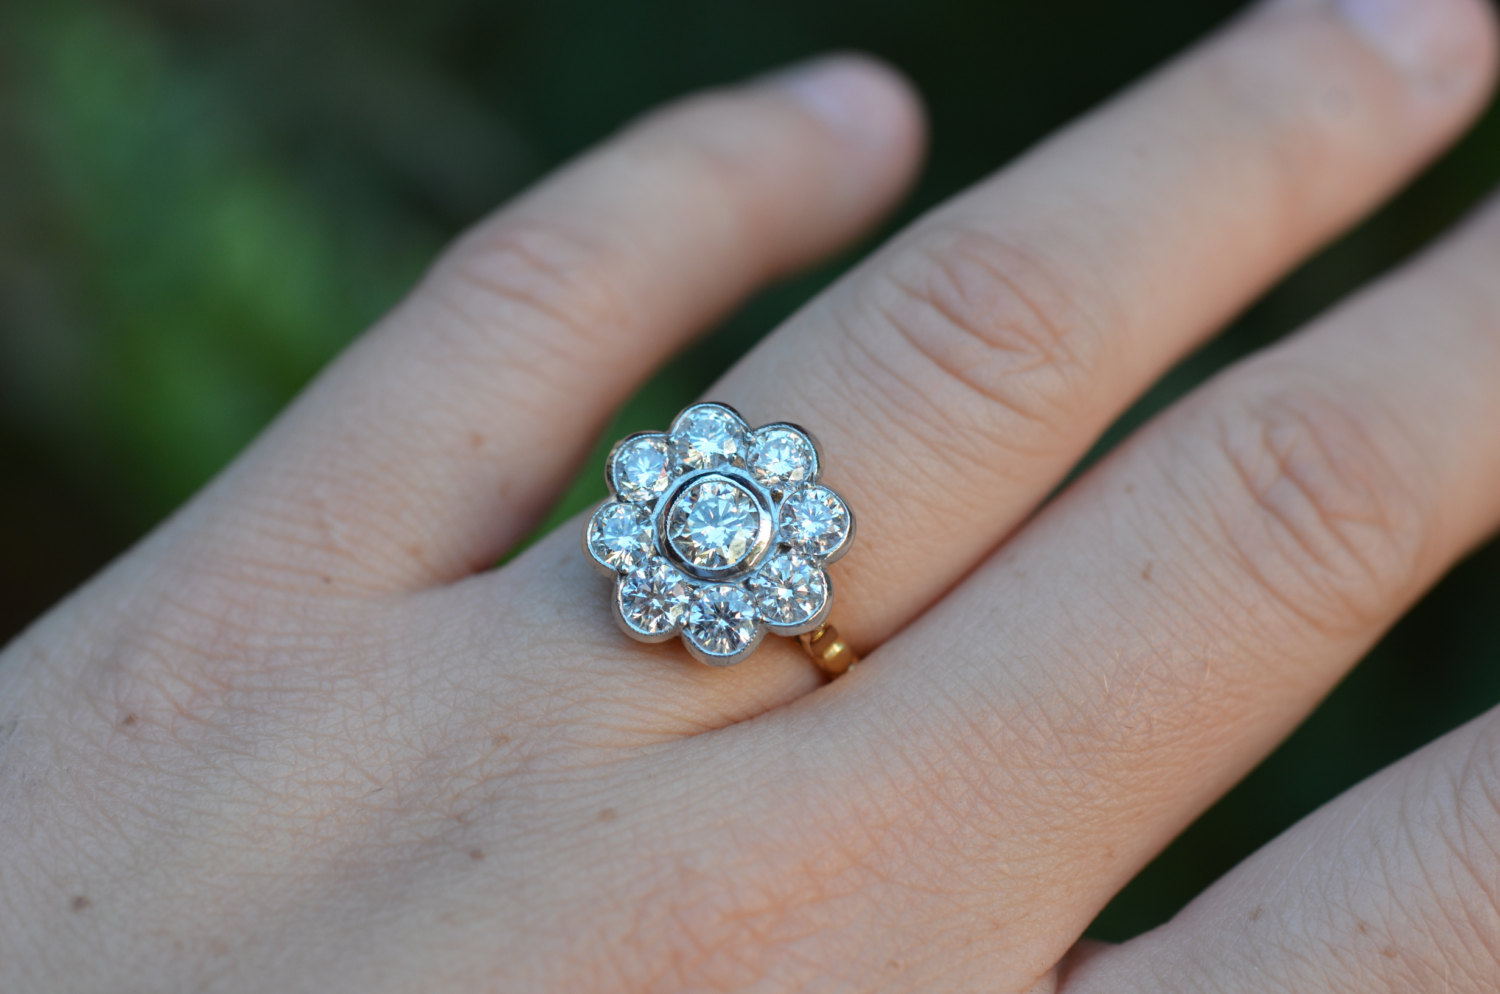 Best Of Etsy Antique And Vintage Diamond Rings Katie